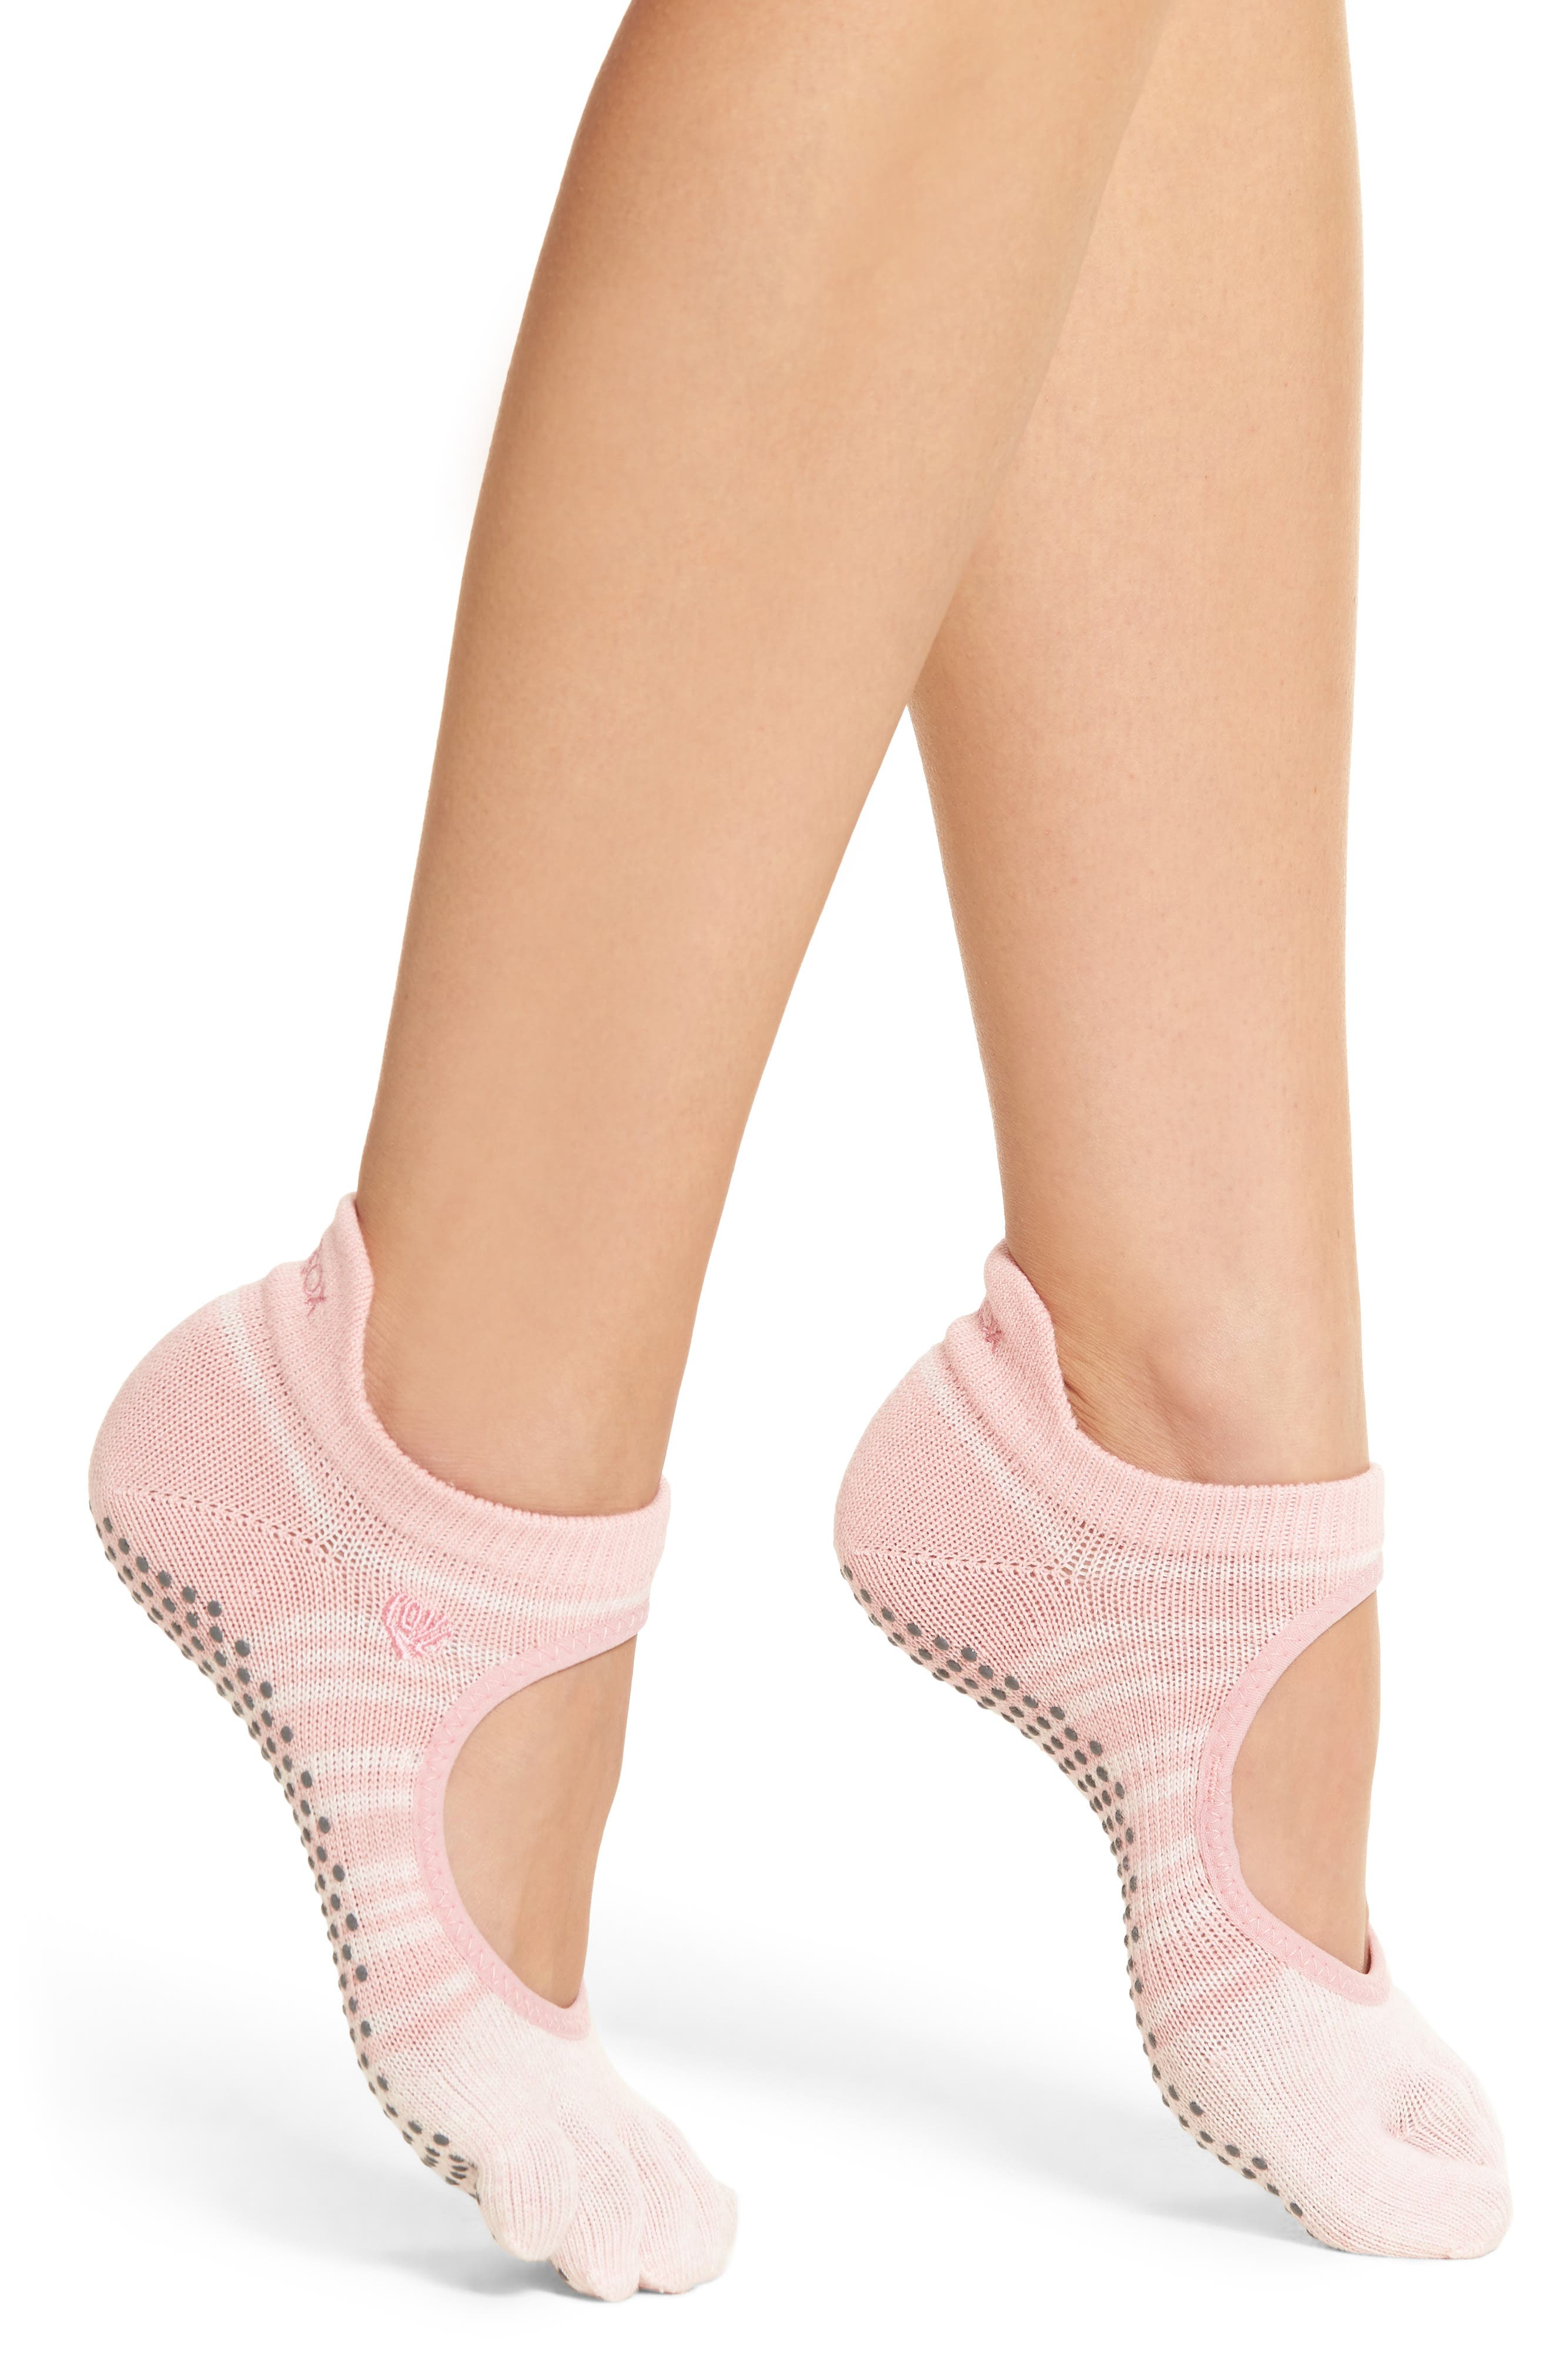 Alternate Image 1 Selected - ToeSox Bellarina Full Toe Gripper Socks